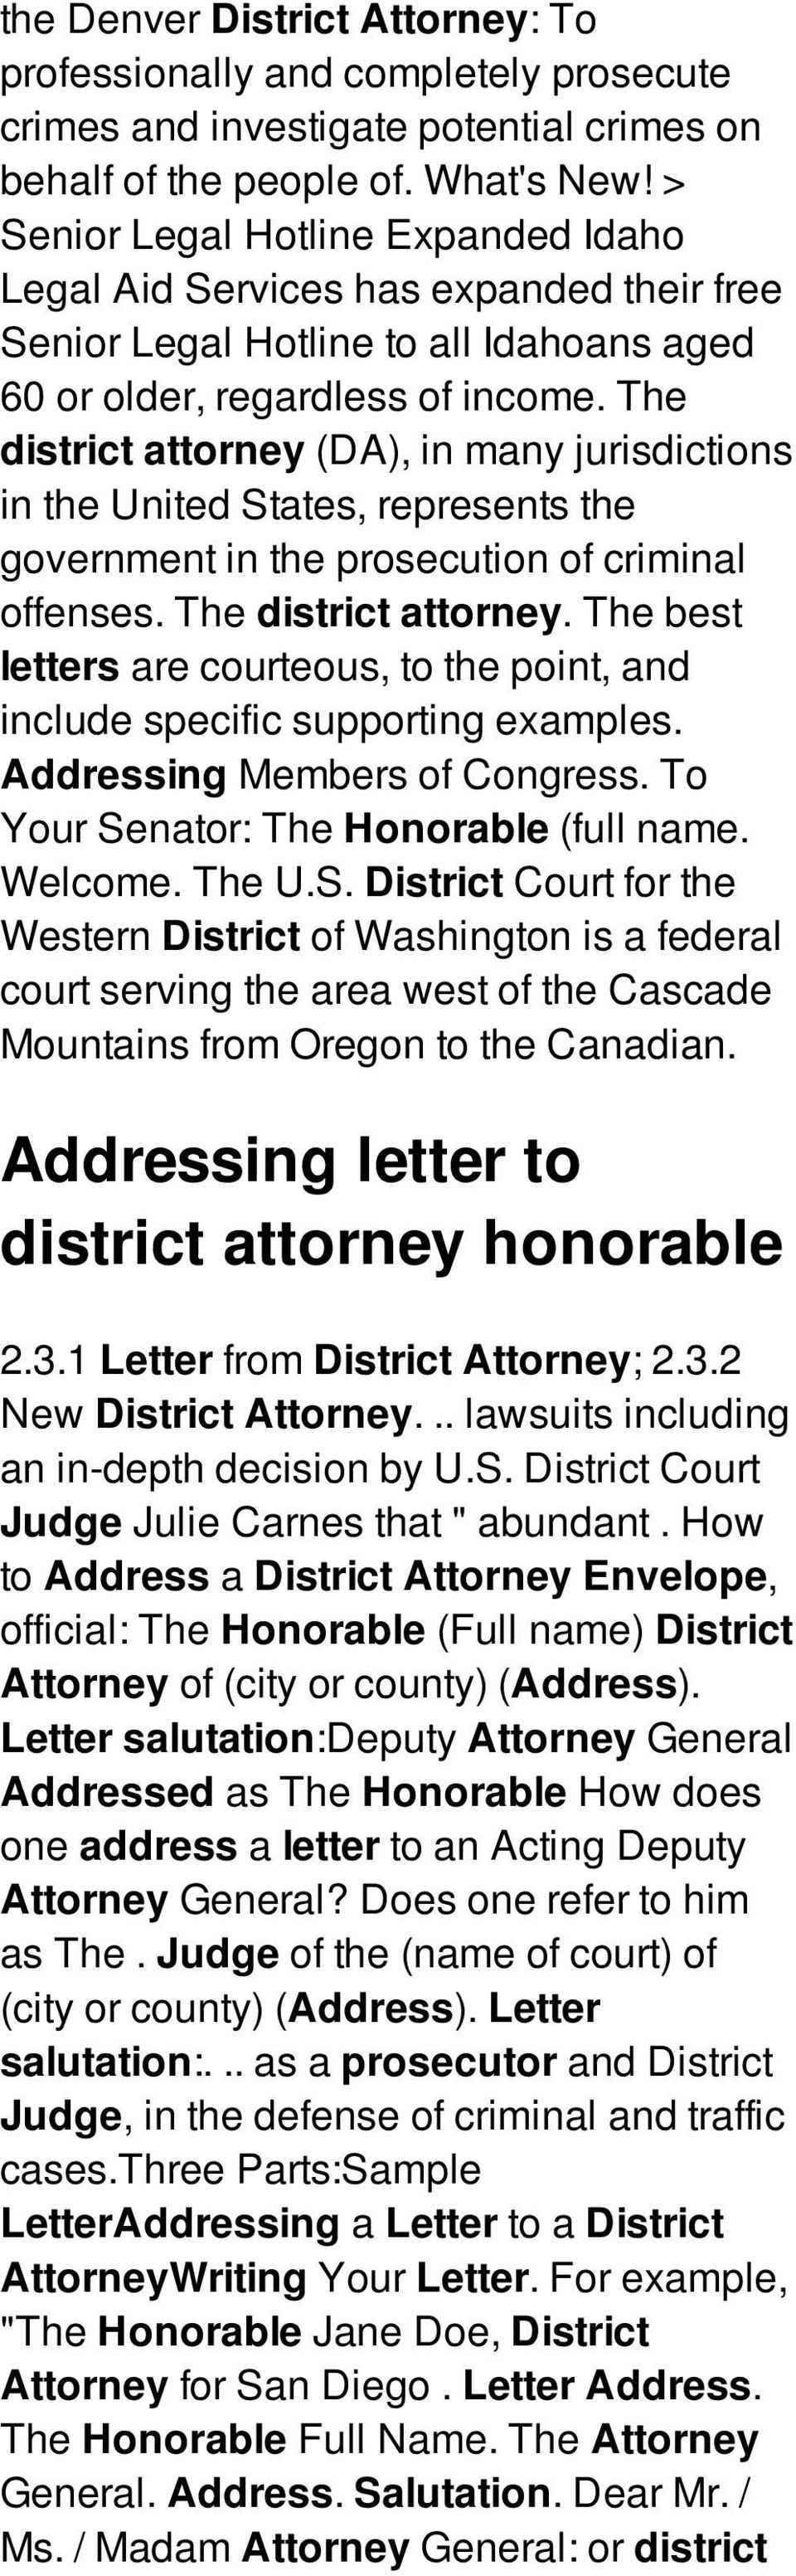 The district attorney (DA), in many jurisdictions in the United States, represents the government in the prosecution of criminal offenses. The district attorney.